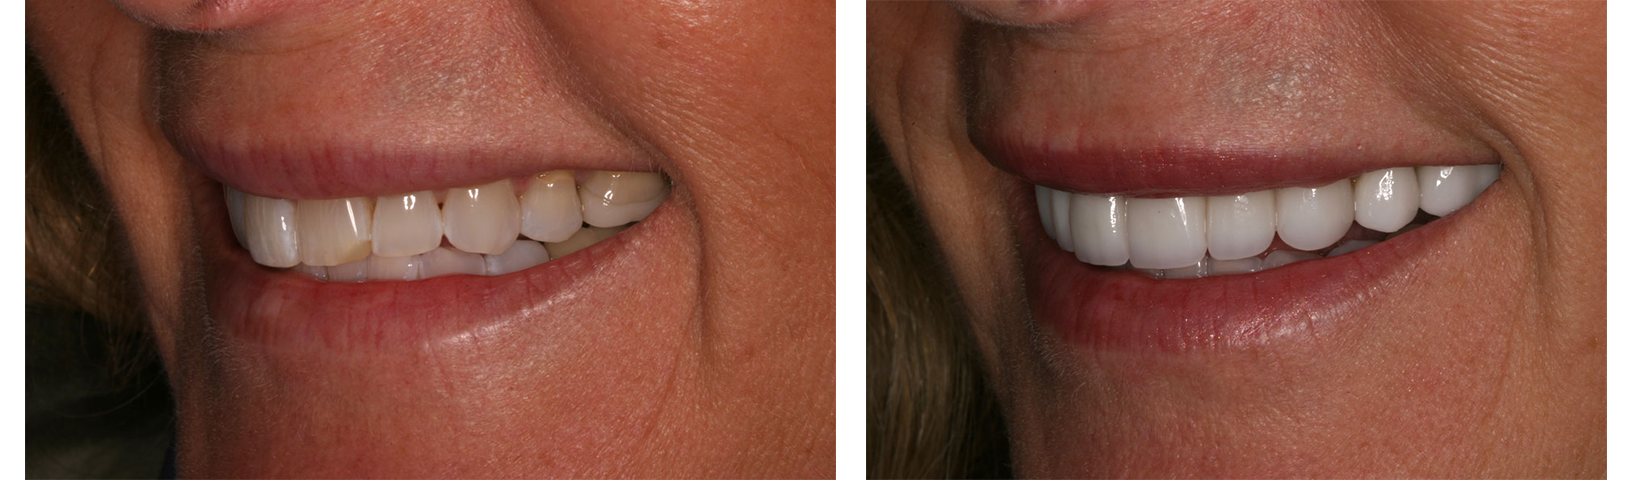 Before & After Porcelain Veneers in Danville